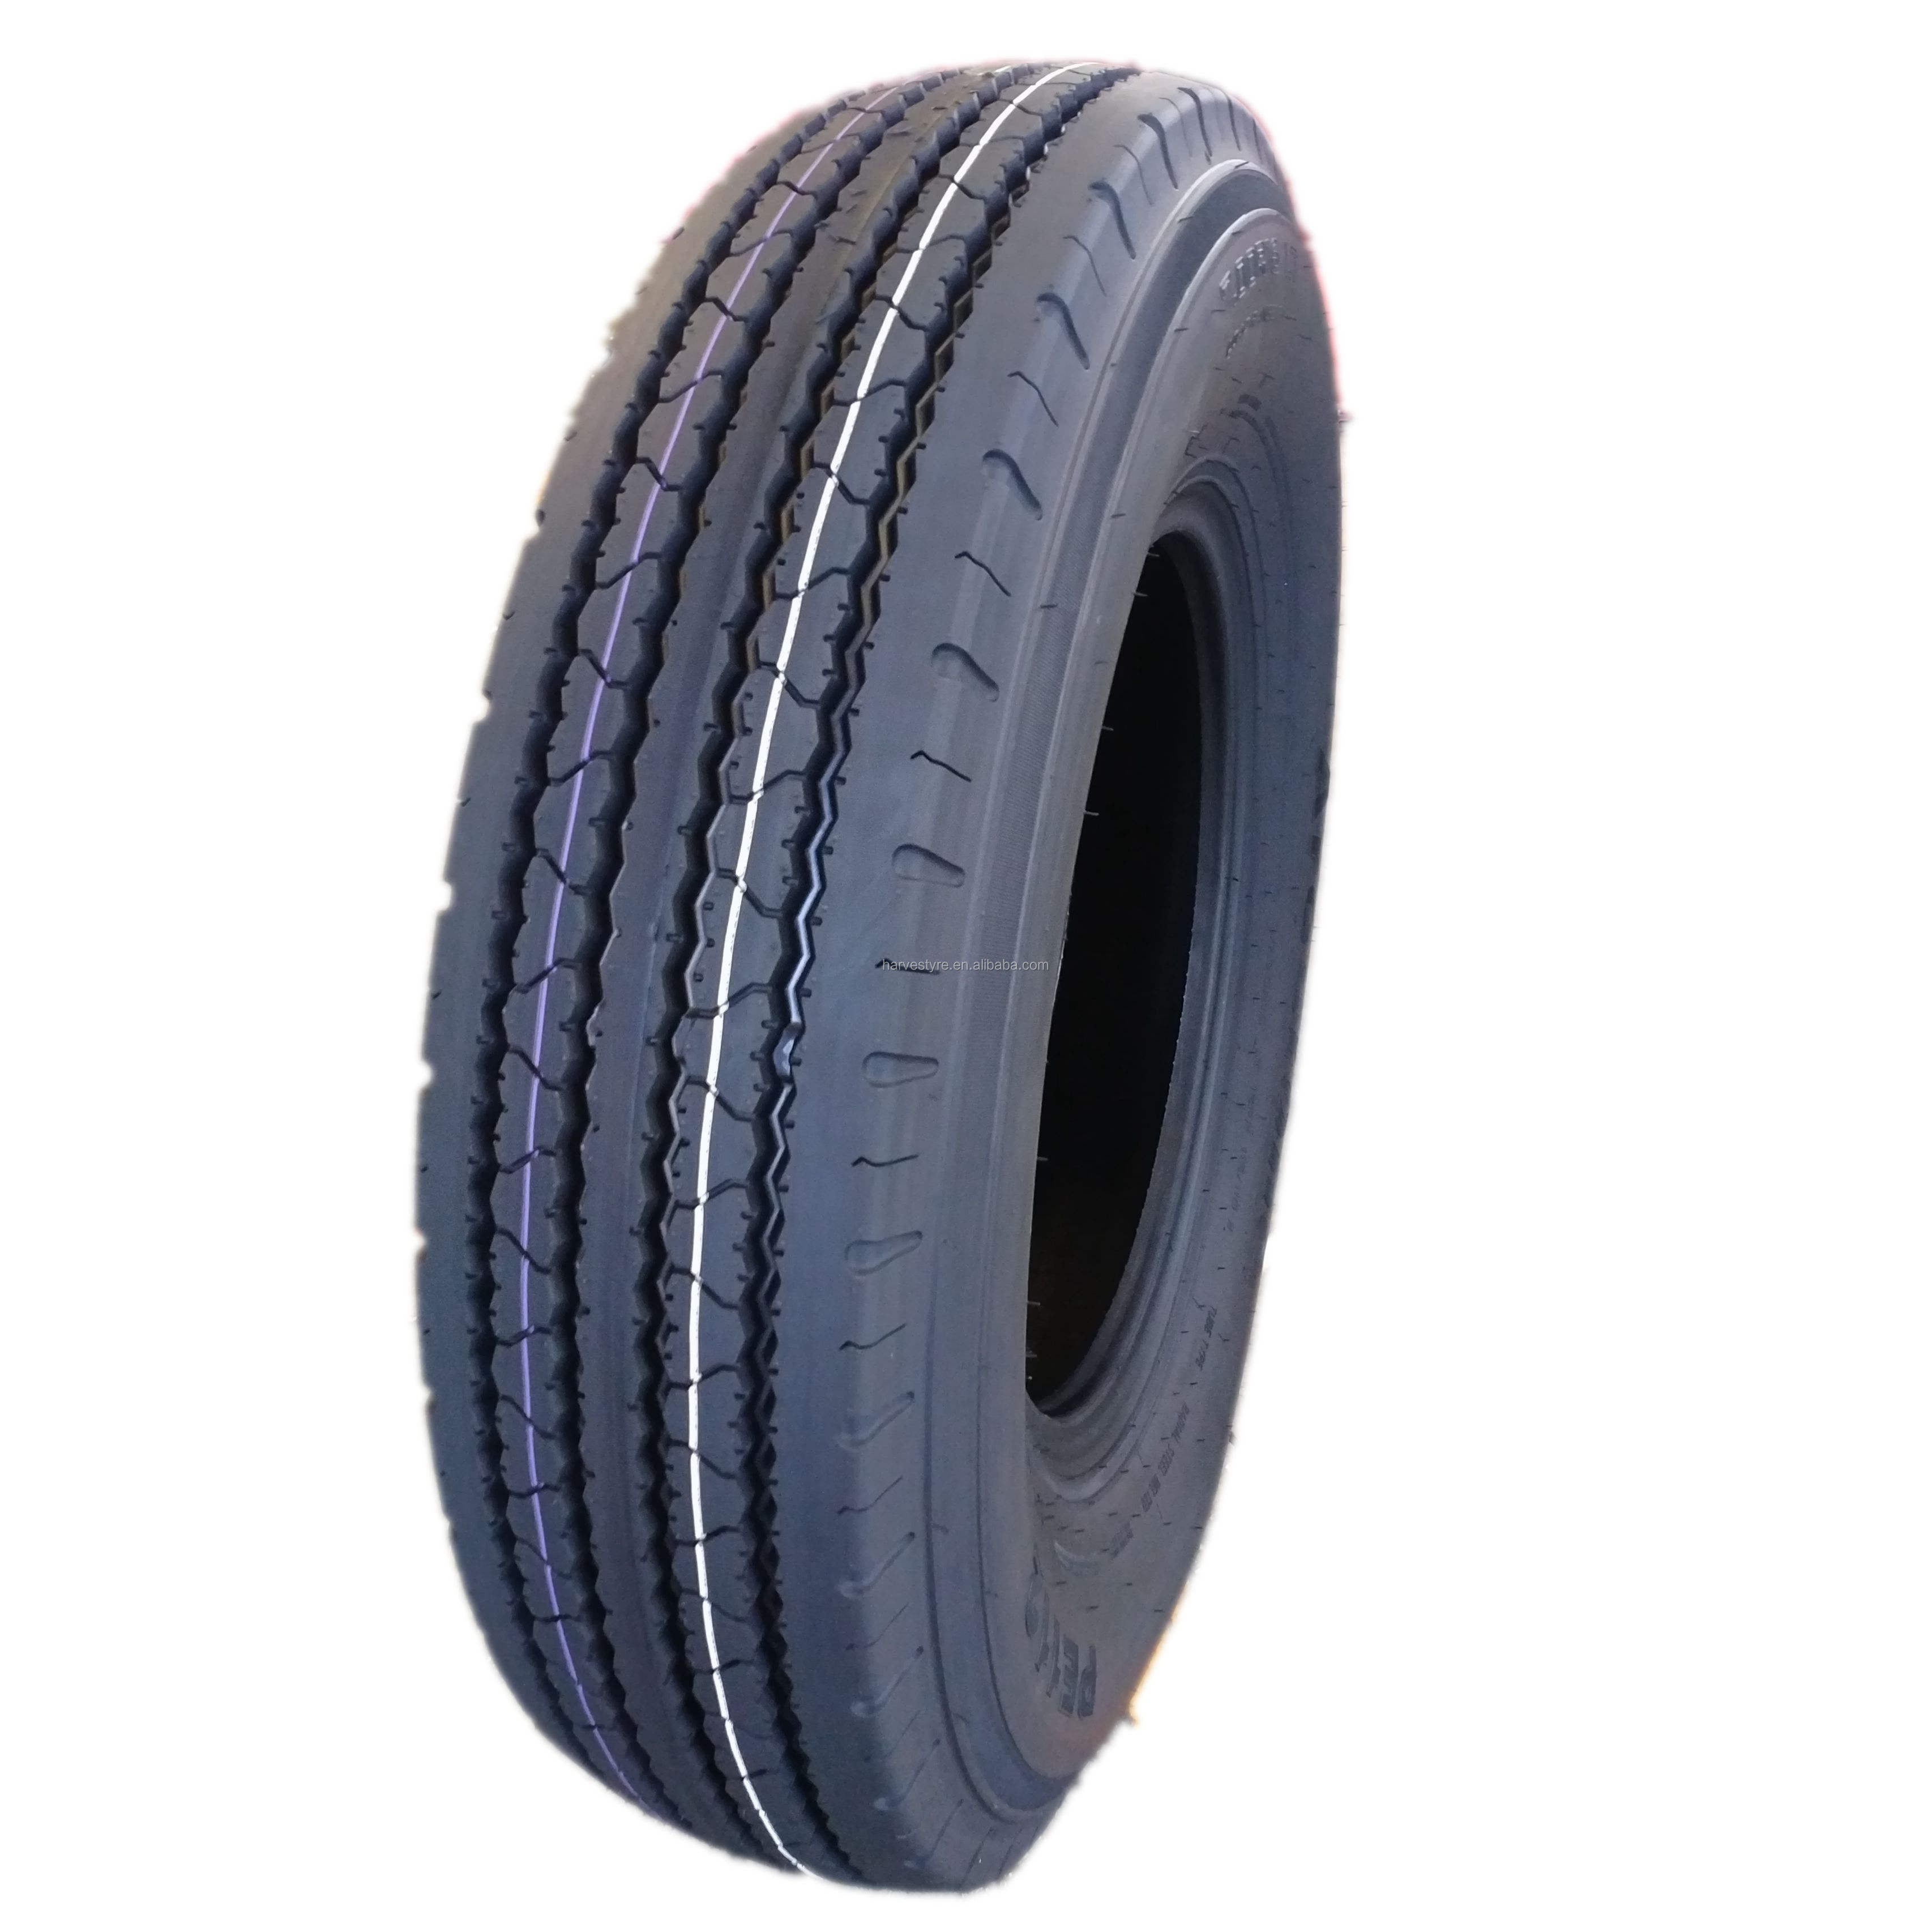 Luce camion tire700R15